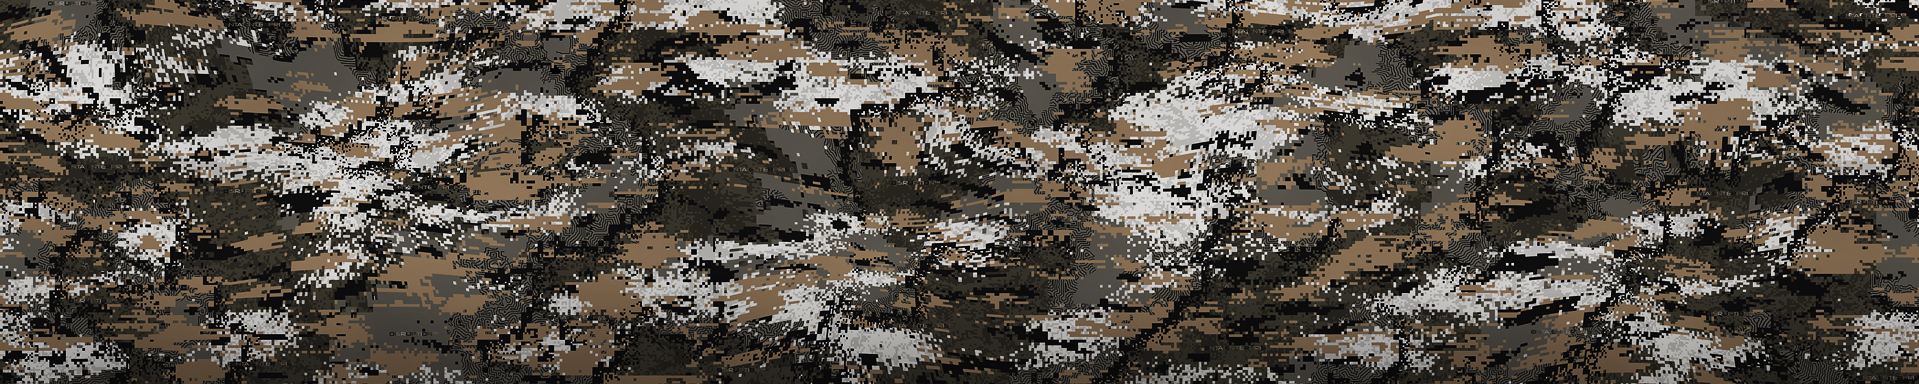 camo-disruption-footer.jpg